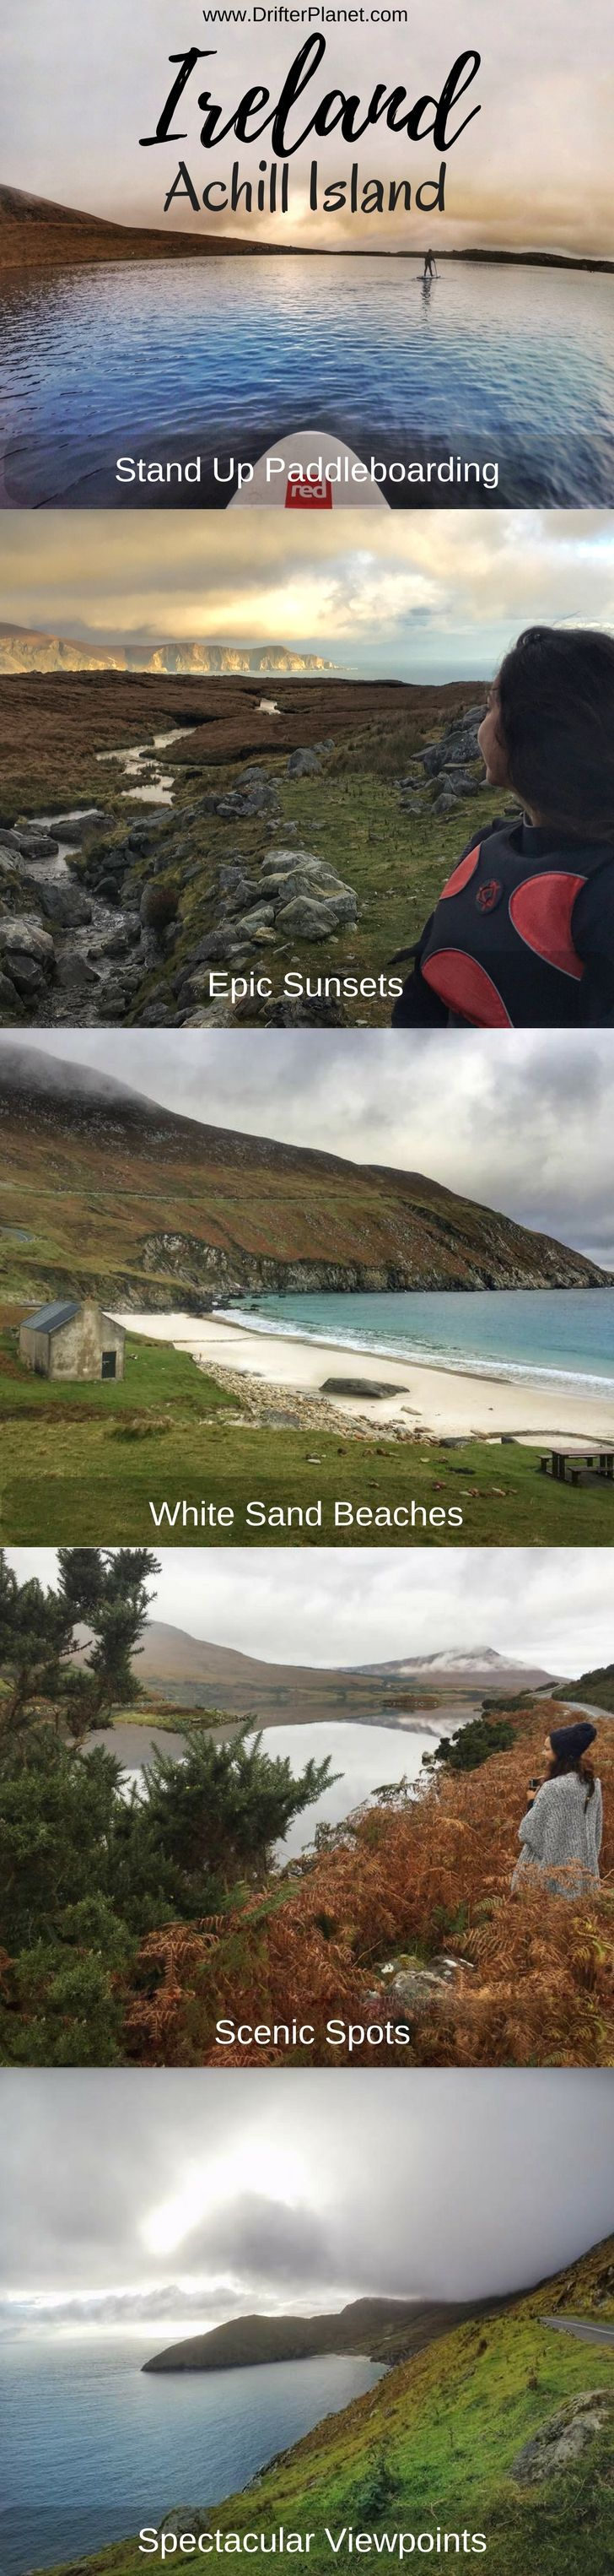 Travel guide to Achill Island - the coolest place in Ireland - on the Wild Atlantic Way.  This island has some of the most breathtaking viewpoints, a white sand beach - Keem Beach and many adventure options such as SUP (Stand up Paddleboarding). It is in county Mayo.